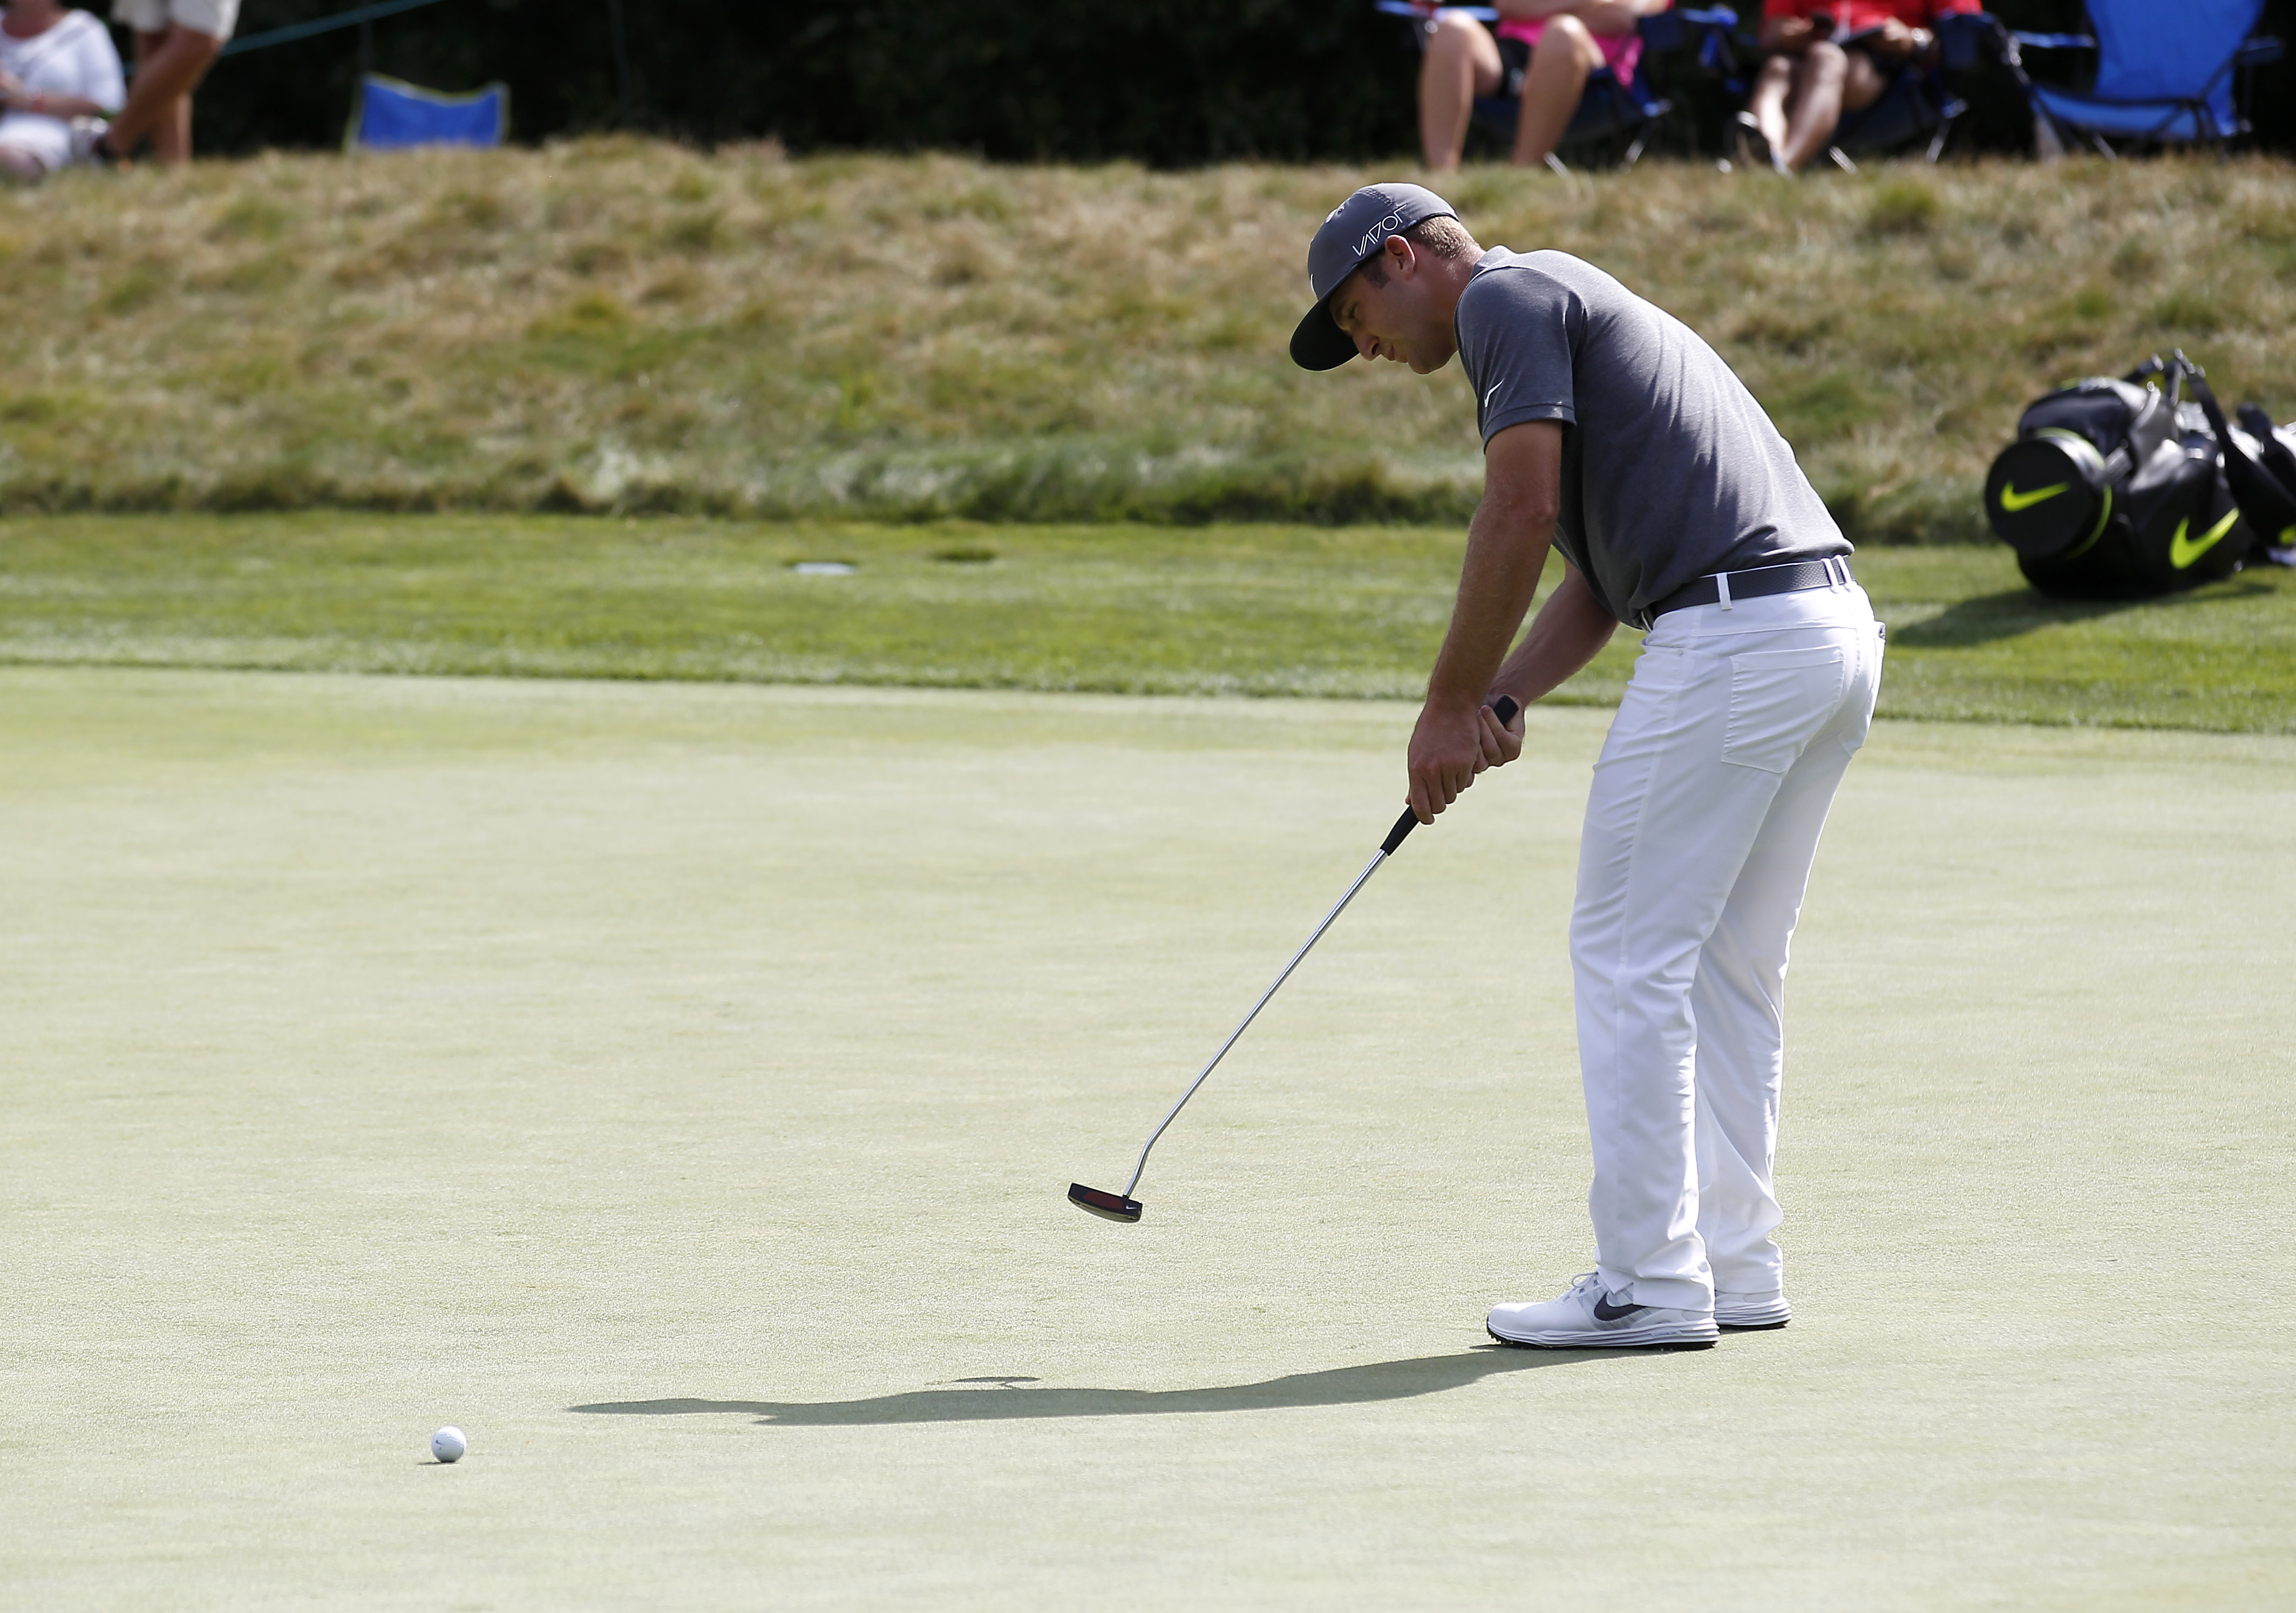 Kevin Chappell putts on the ninth hole during the first round of the Deutsche Bank Championship golf tournament in Norton, Mass., Friday, Sept. 4, 2015. (AP Photo/Stew Milne)